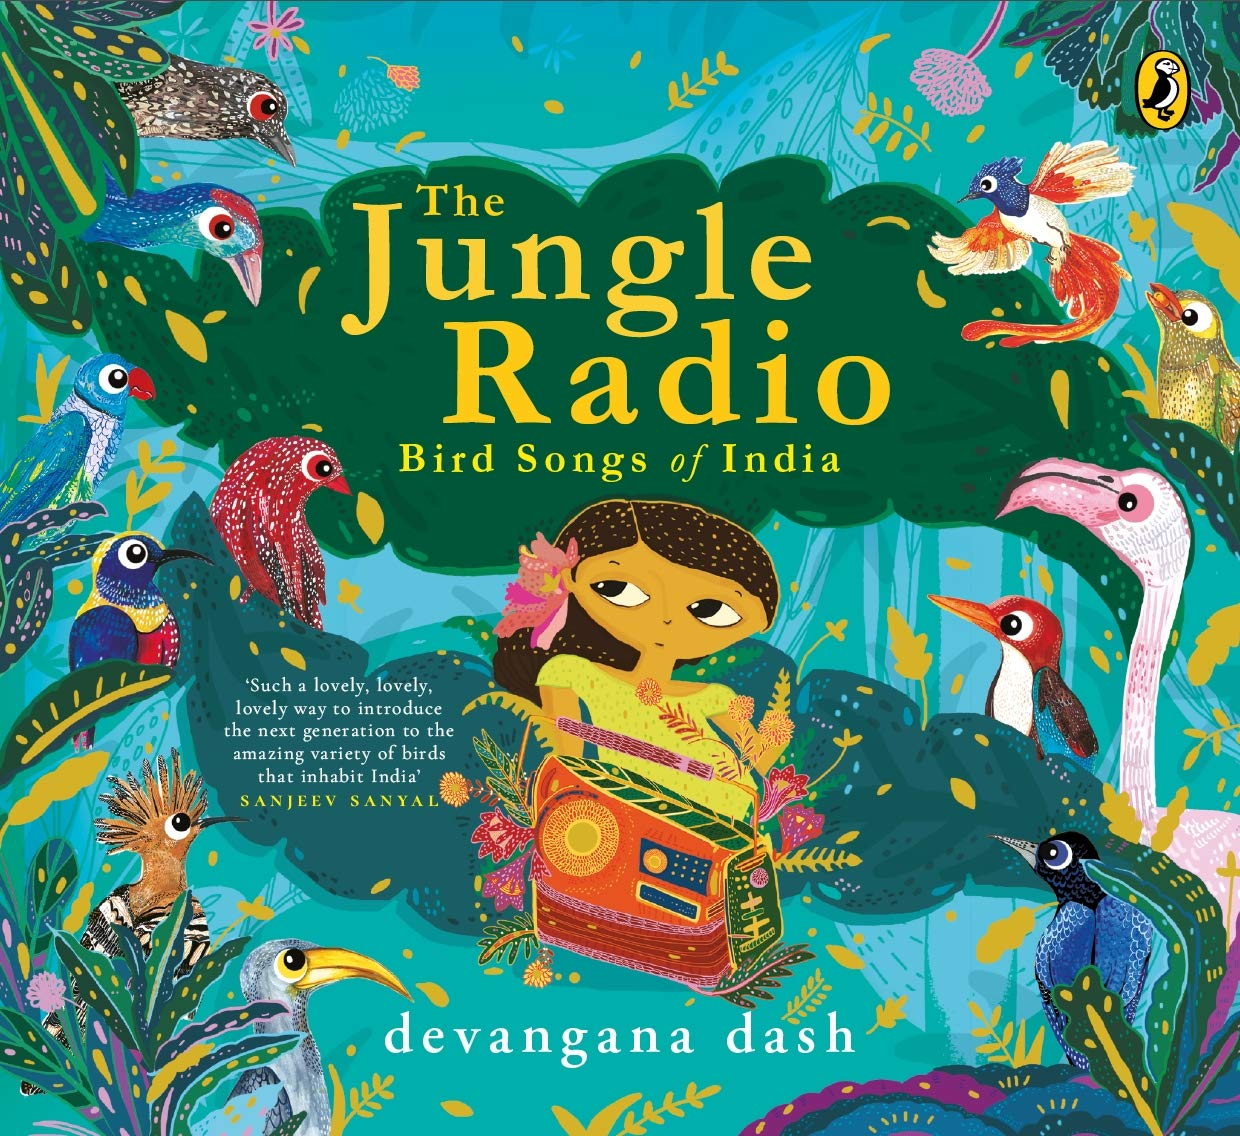 The Jungle Radio